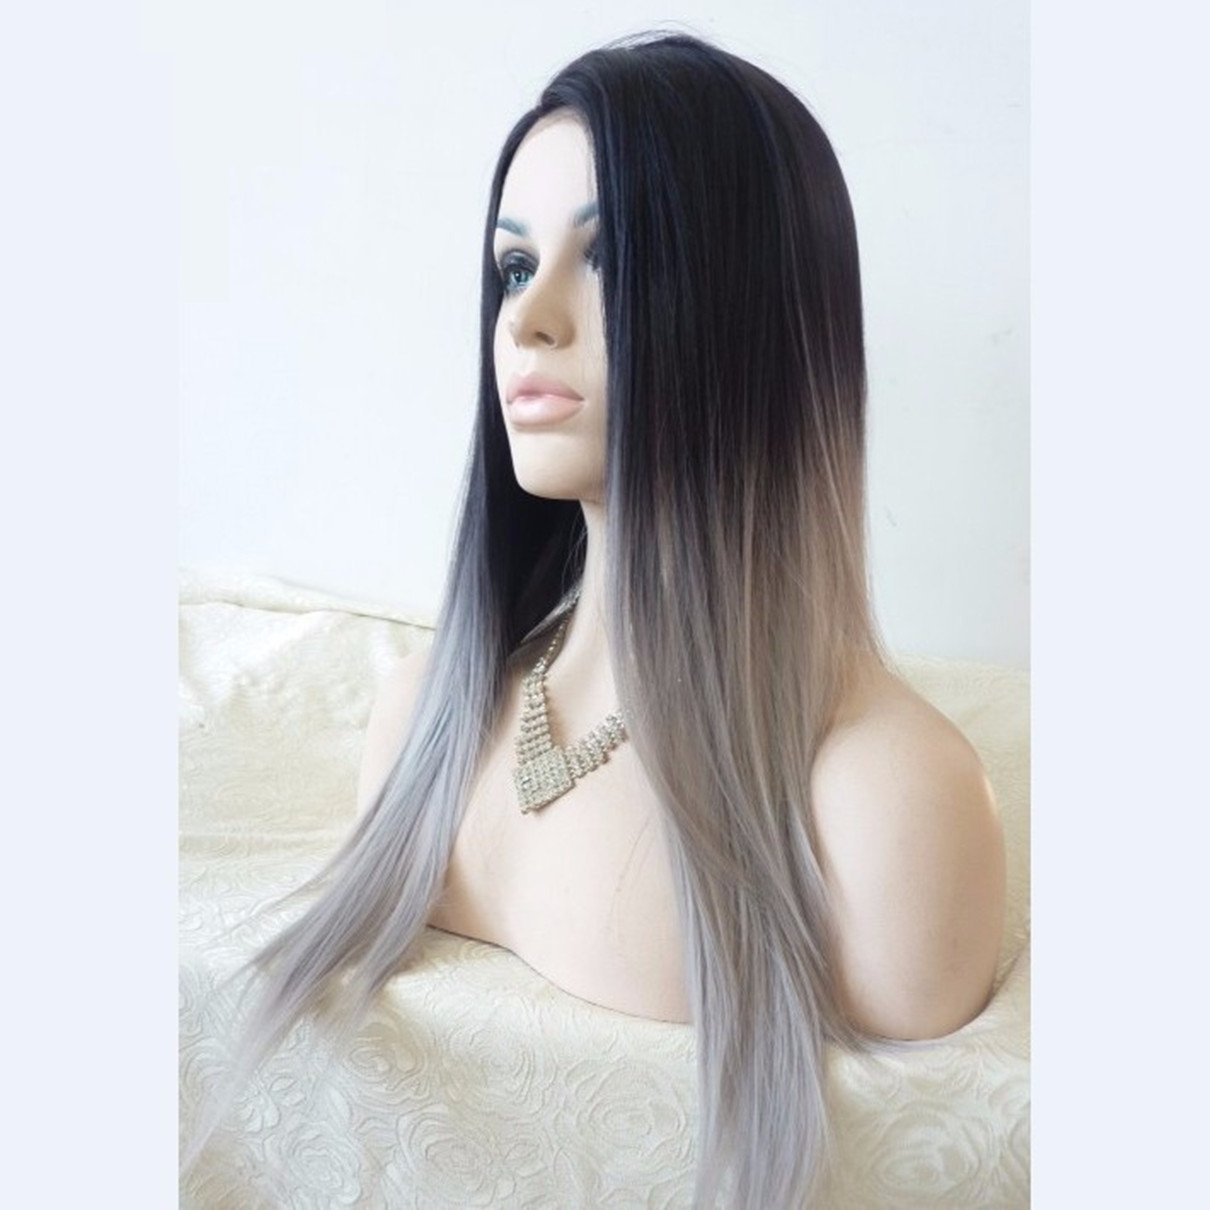 Superwigy Most Popular Cheap Ombre Wig Womens Lady's Long Stright Wigs Two Tone Black to Grey Synthetic Hair Wigs Soft Degree JF011386-HONGA